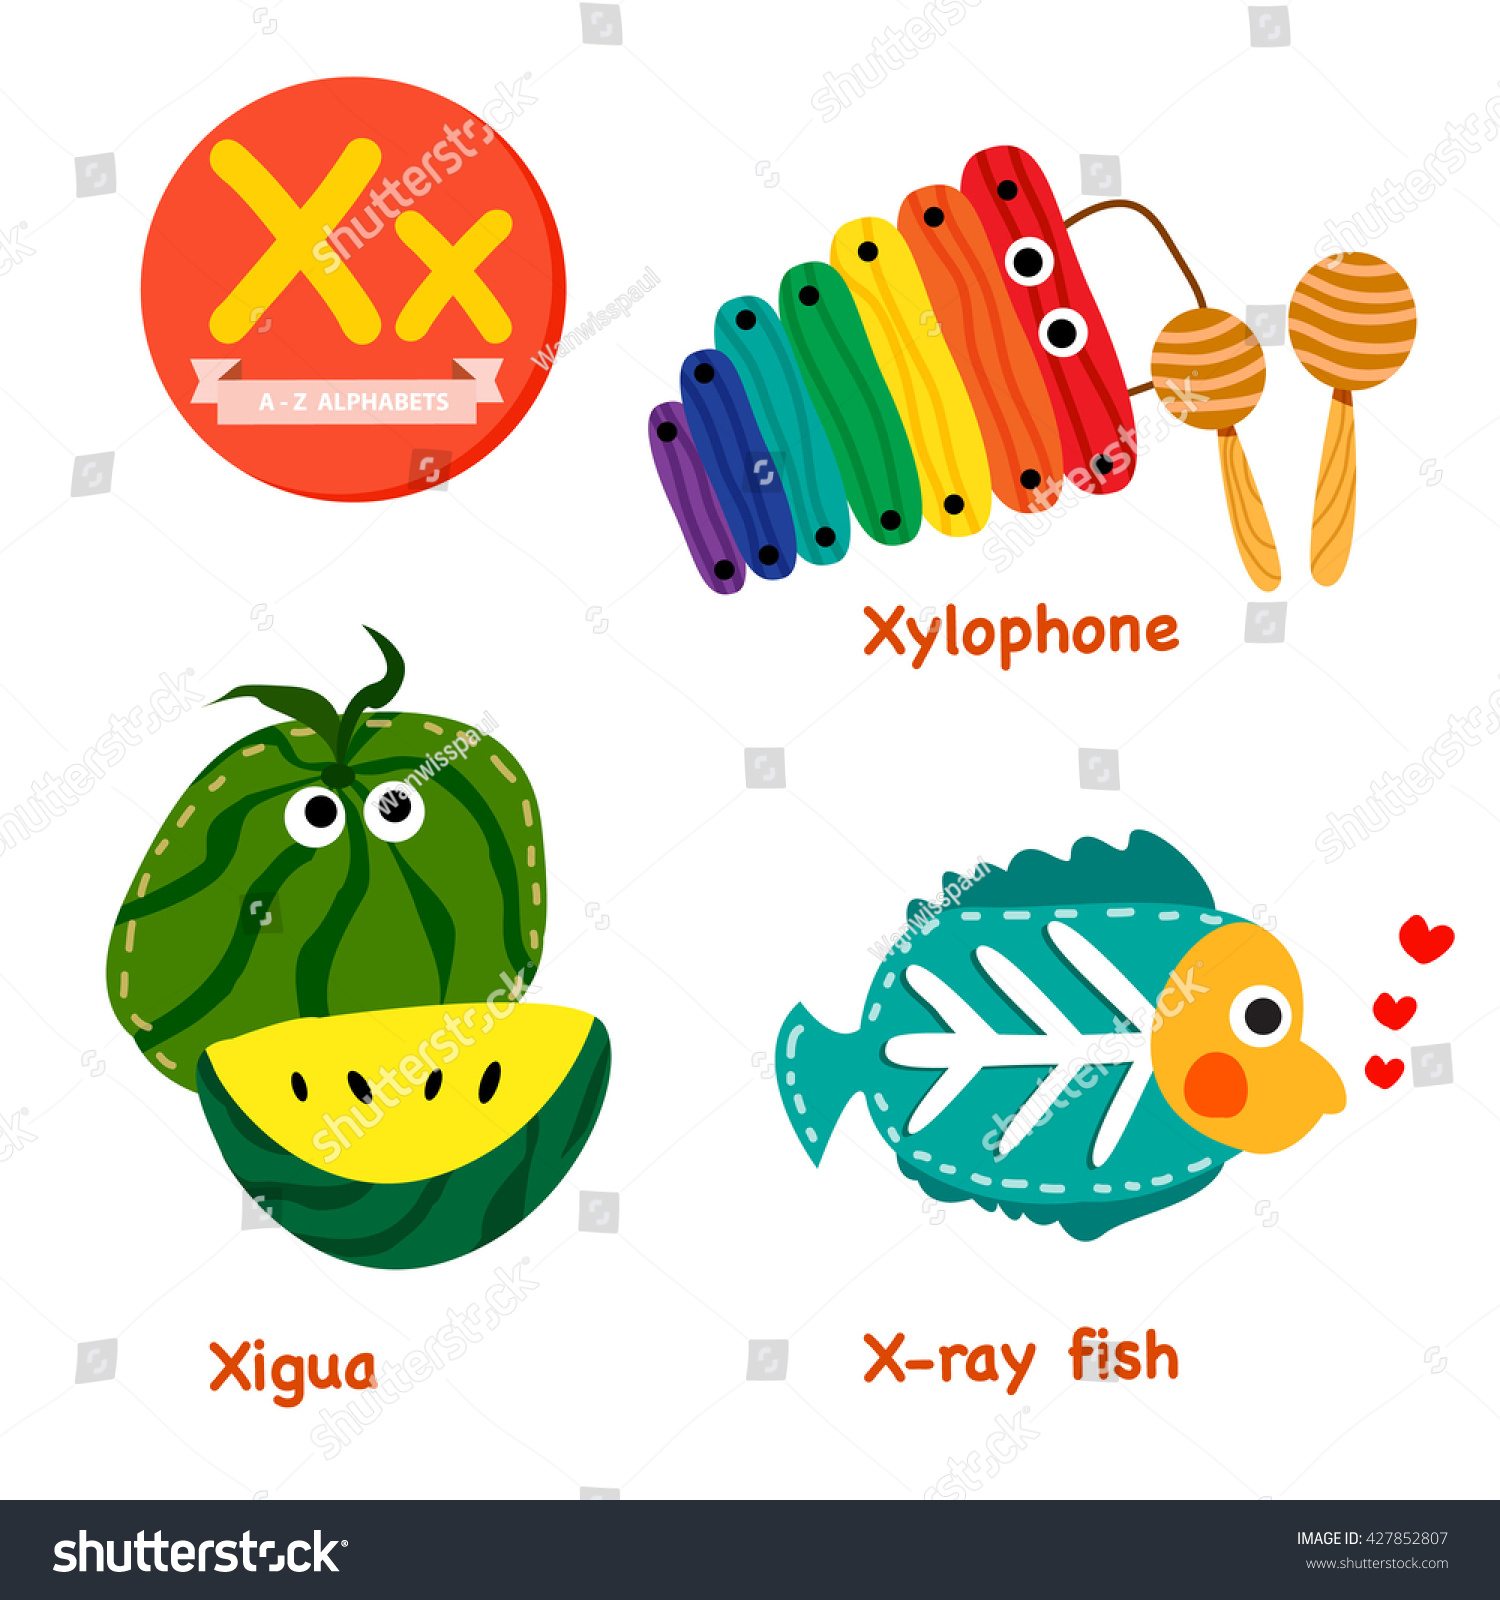 X Vocabulary Cartoon Set Xigua Xray